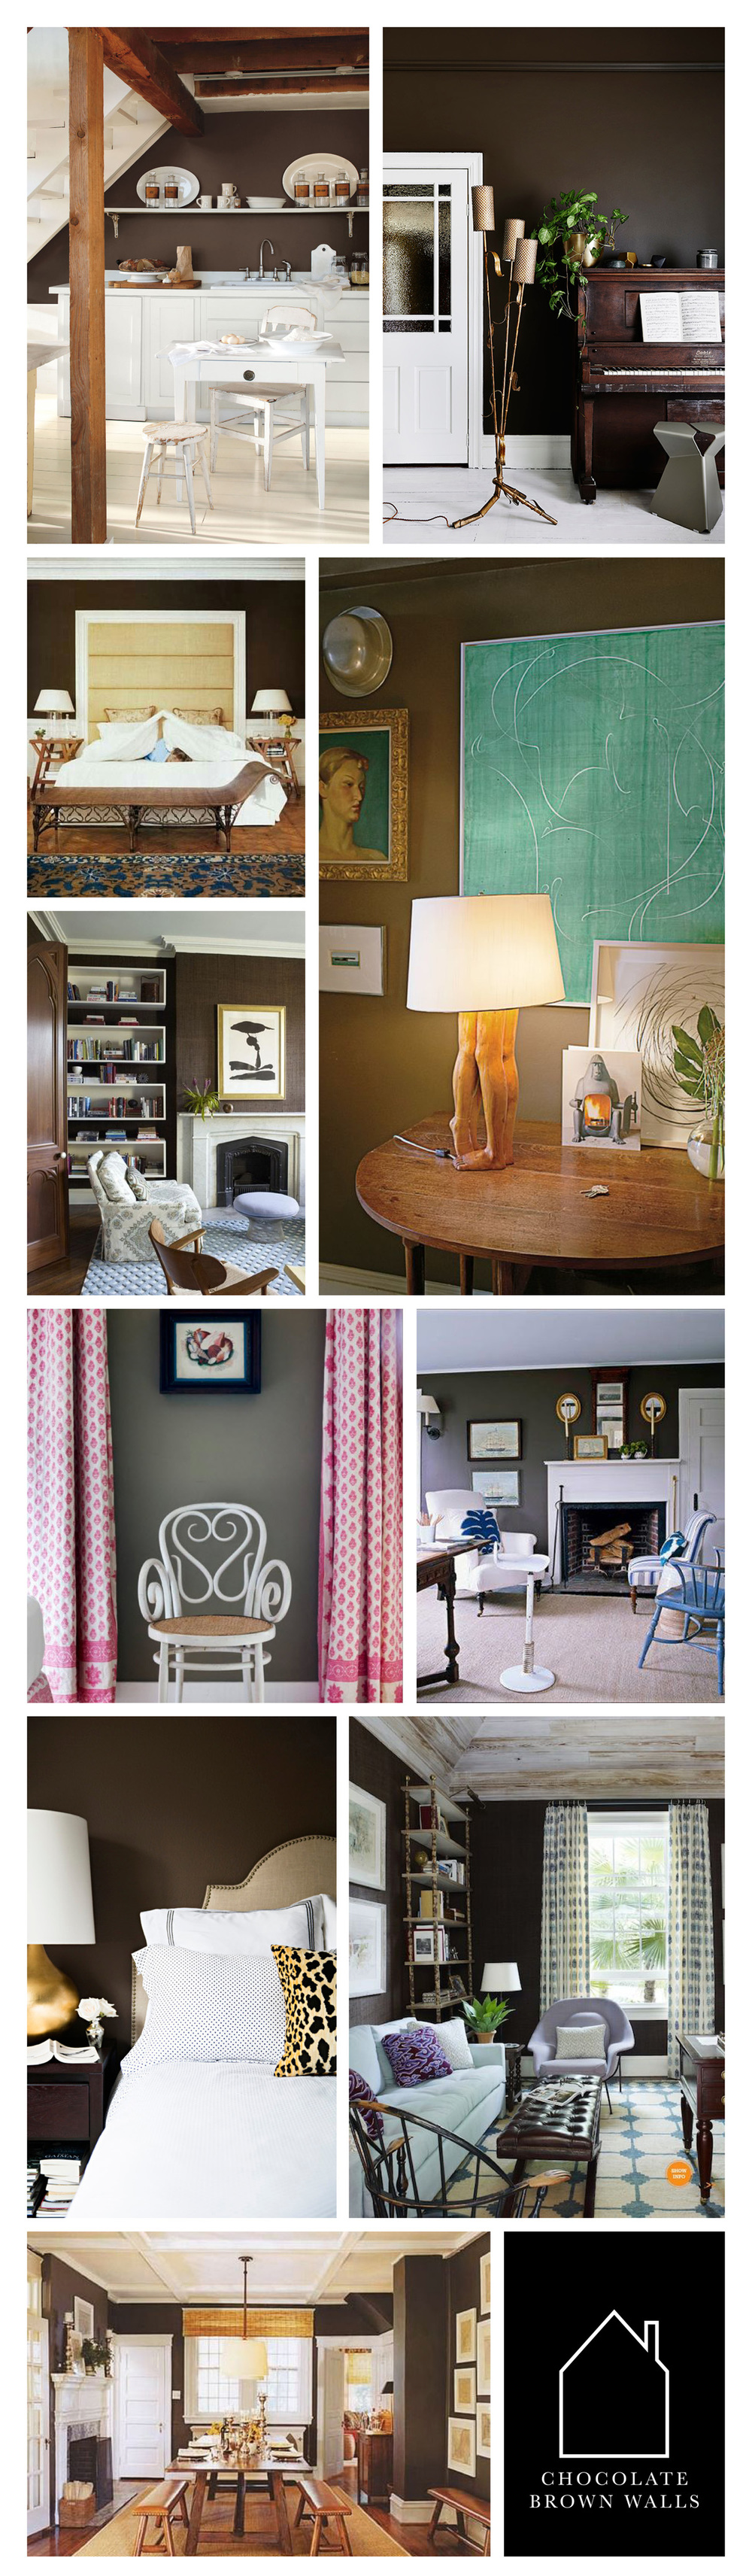 from top left - via  Country Living  - via  The Design Chaser  - bedroom designed by  Tom Scheerer  - entry in home of  Tom Scheerer  - living room designed by  Tom Scheerer  - chair with pink curtains in room designed by Tom Scheerer - hearth room designed by Tom Scheerer - home of Paloma Contreras via  La Dolce Vita  - office designed by  Tom Scheerer  - dining room designed by Tom  Scheerer